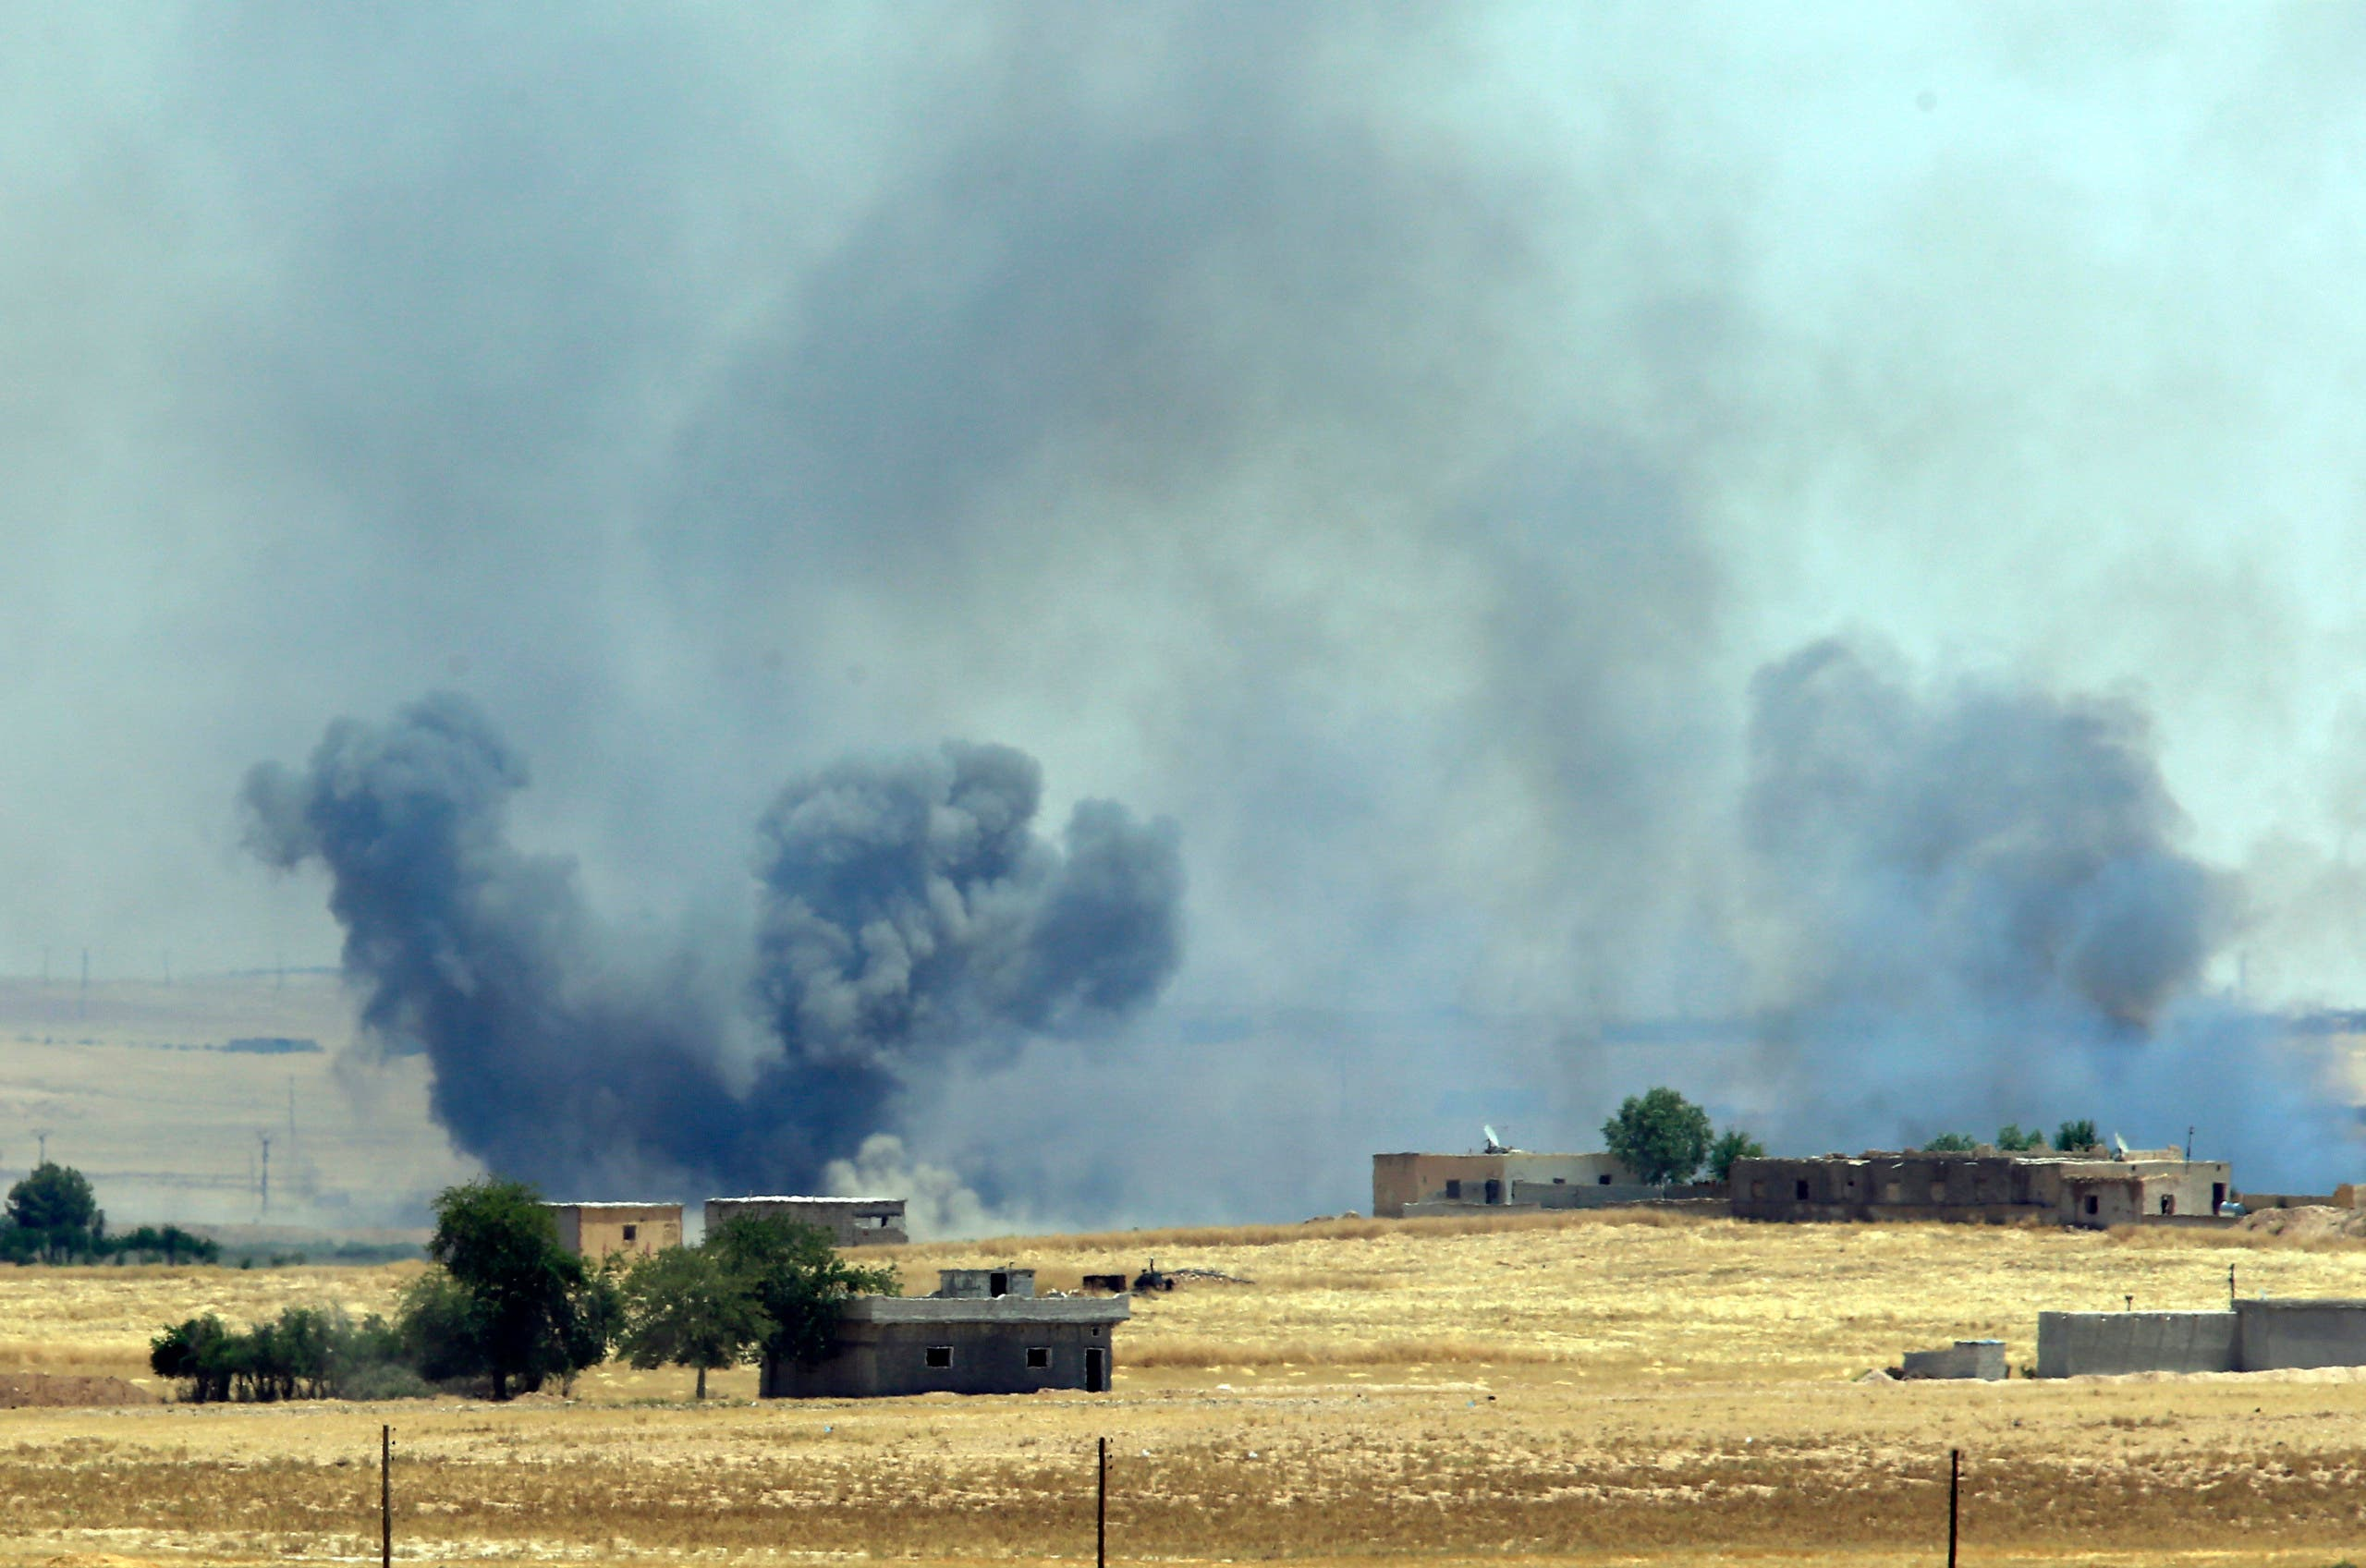 The US-led coalition has been pounding the Raqqa area regularly for months. (File photo: AP)